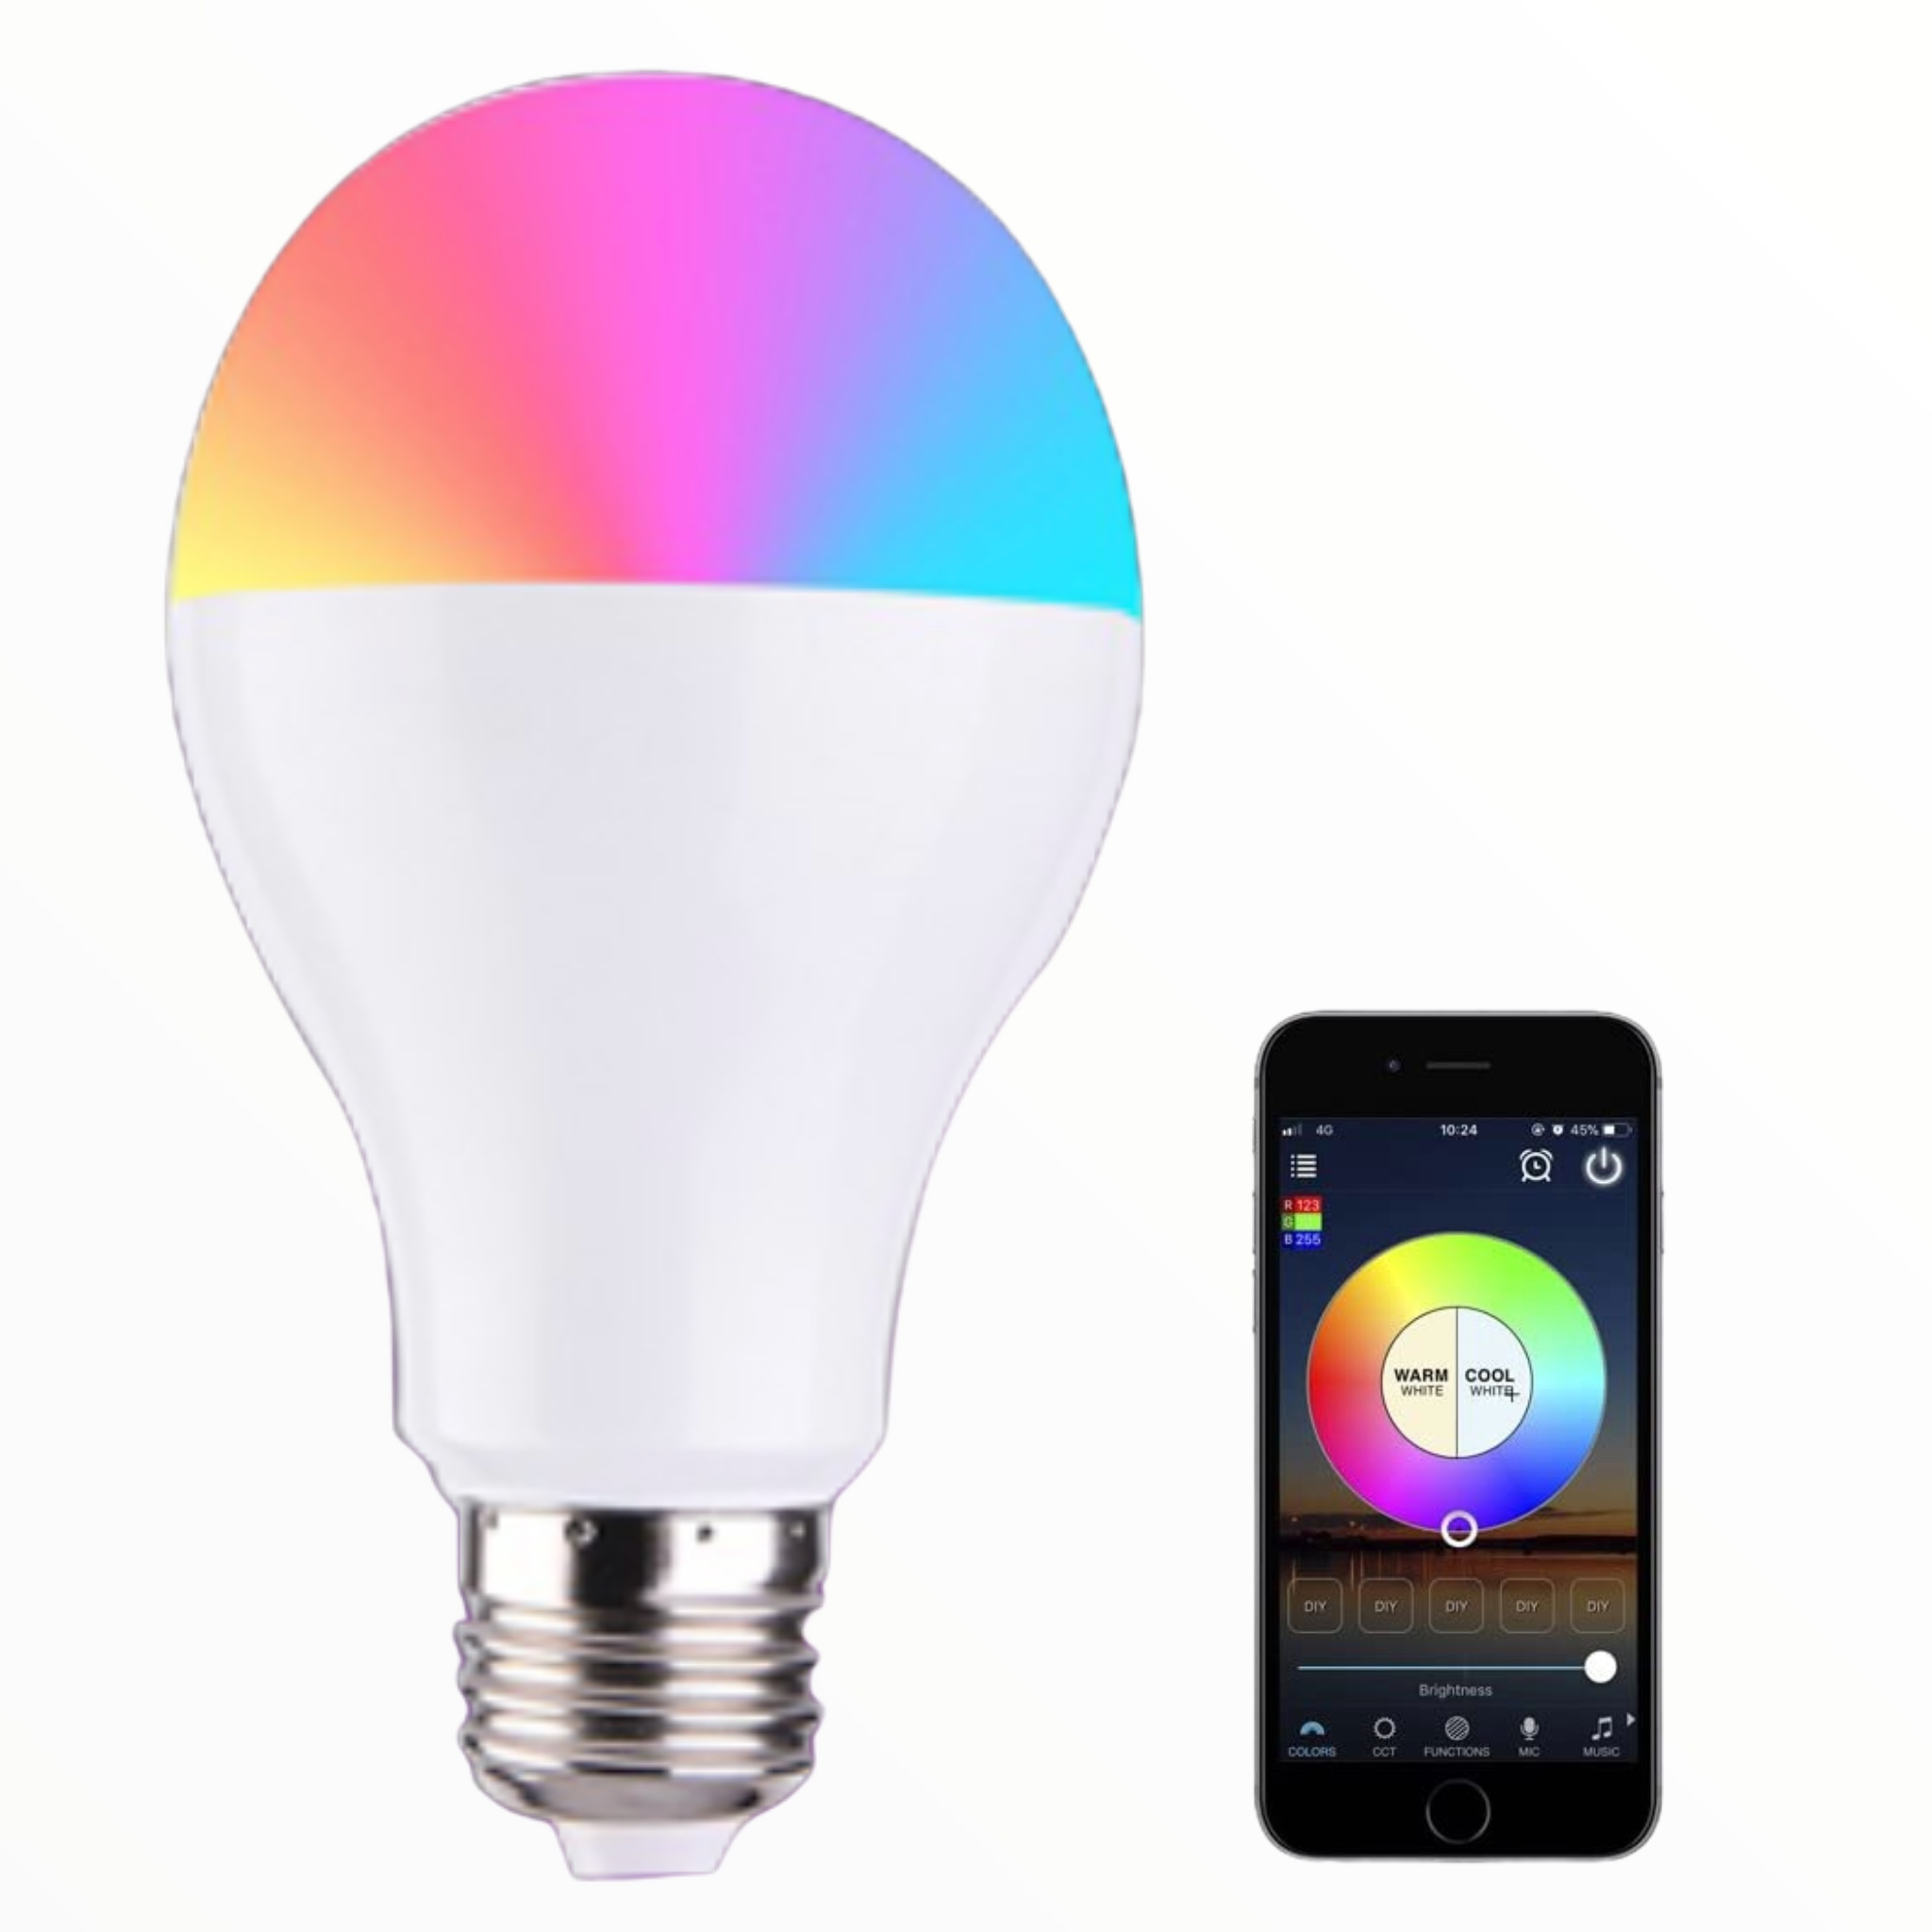 Smart WiFi Enabled LED Dimmabl...